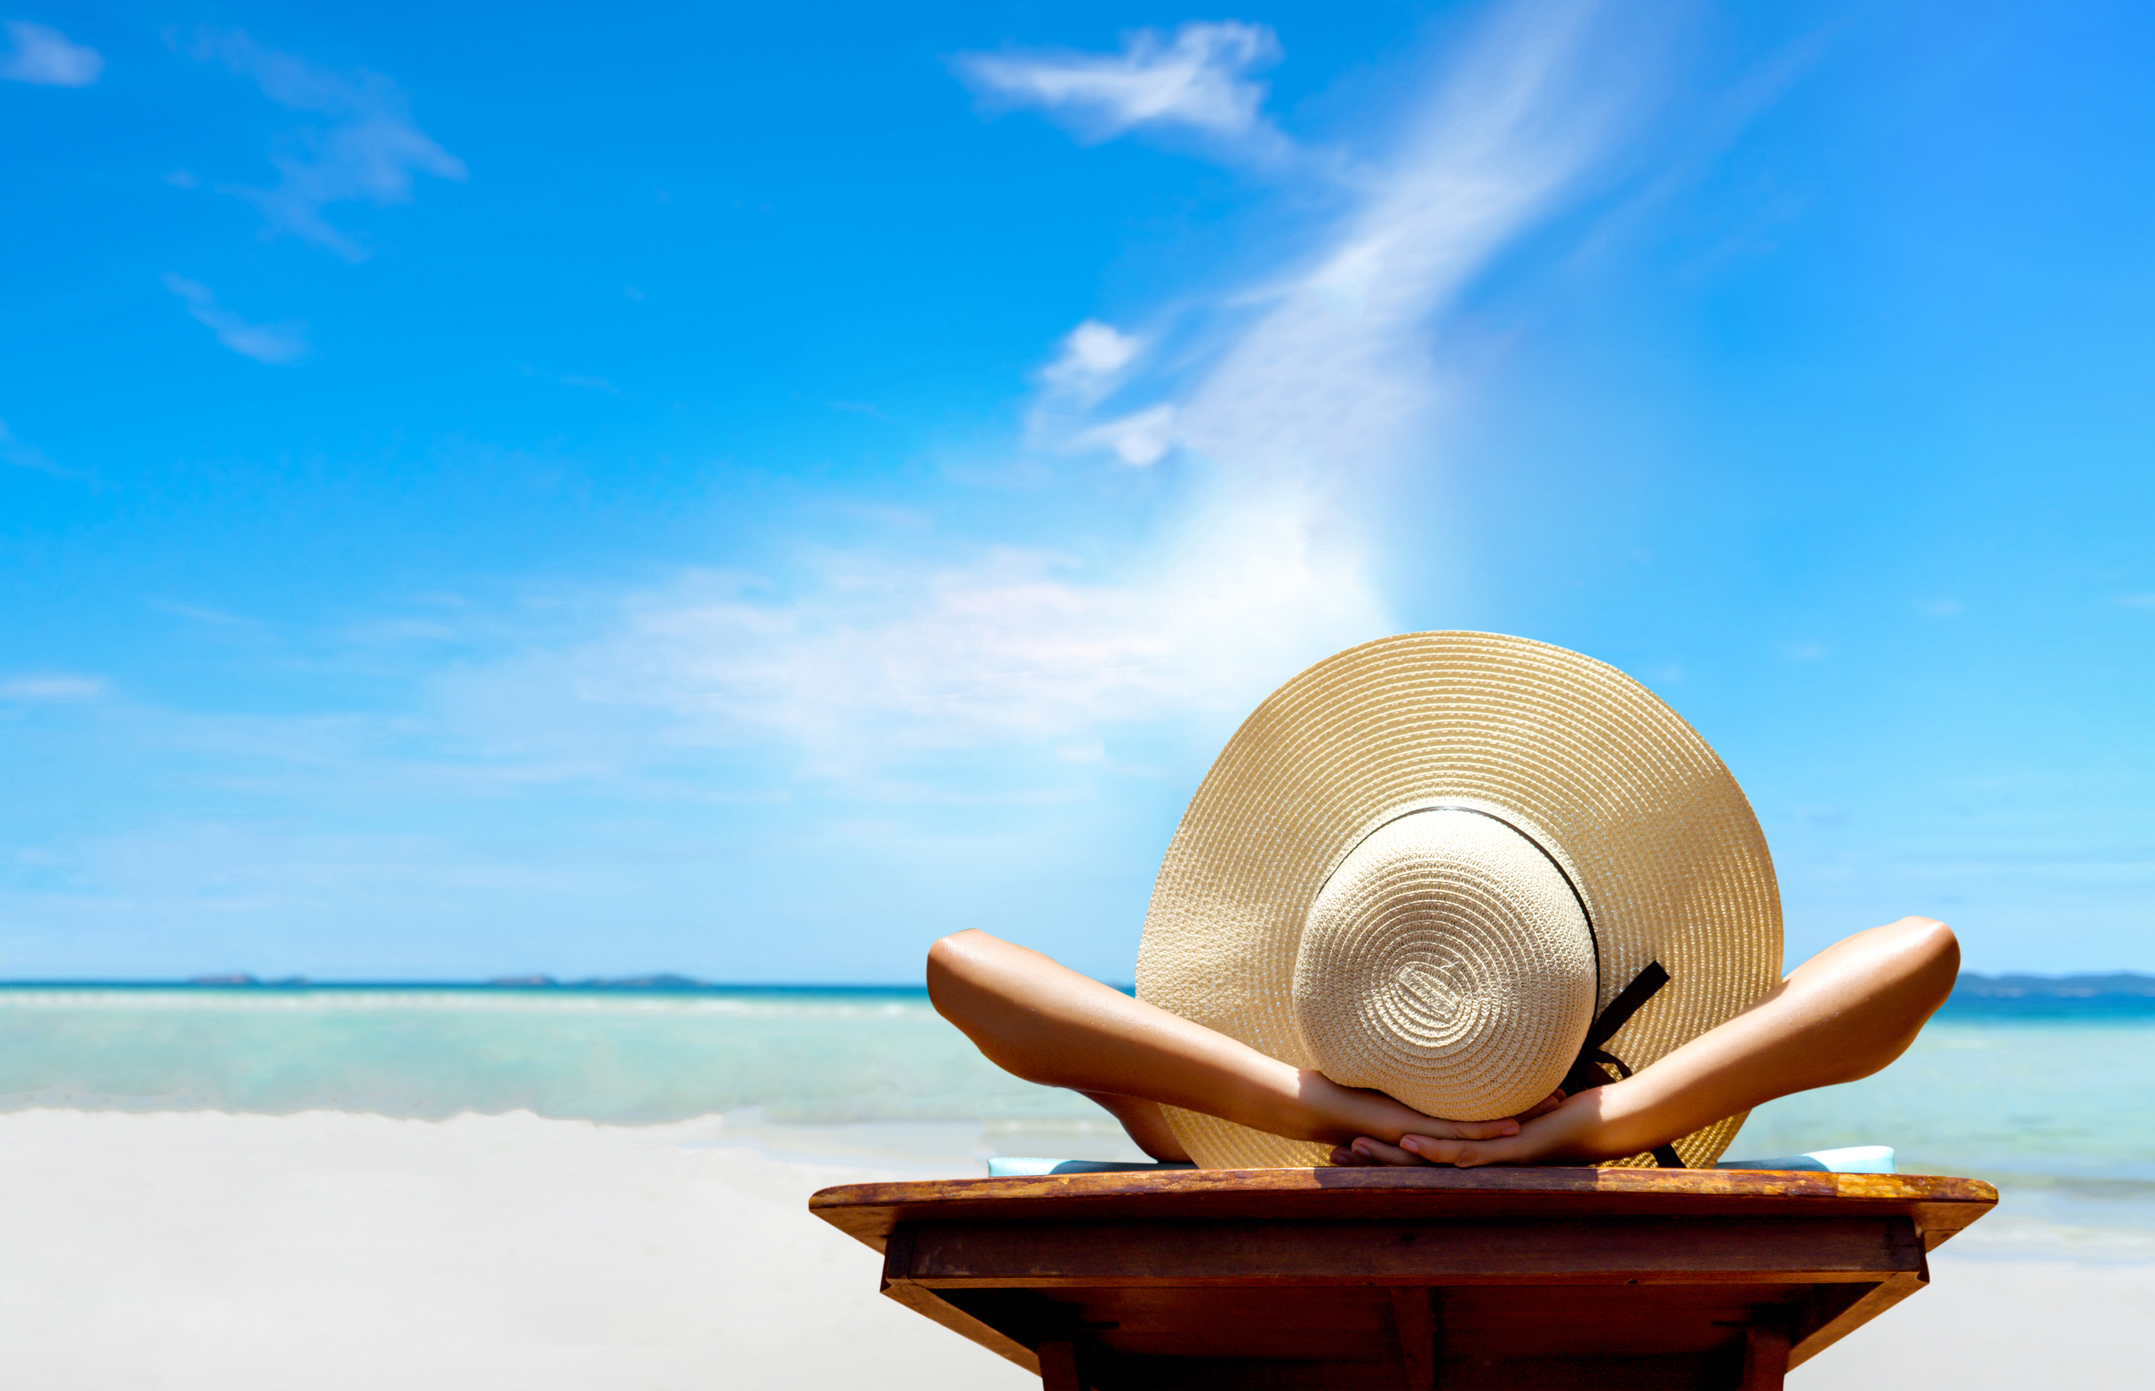 workcation and vacation tips - Virtual Vocations telecommuting and remote jobs